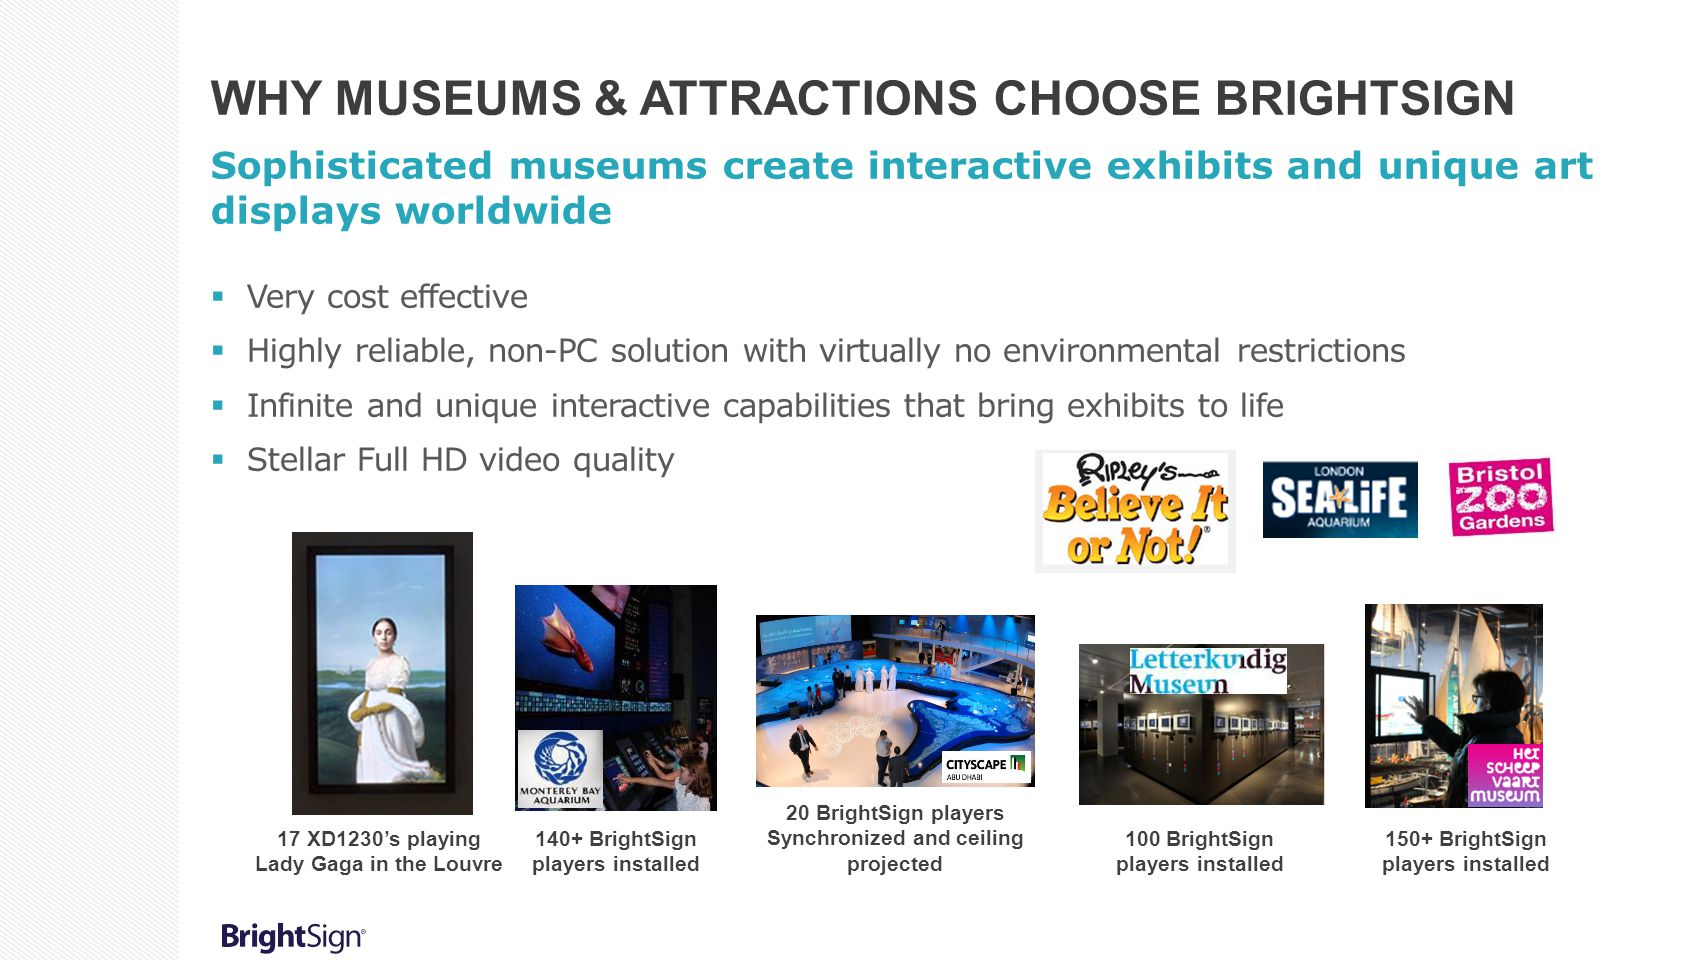 Why Museums & Attractions Choose BrightSign